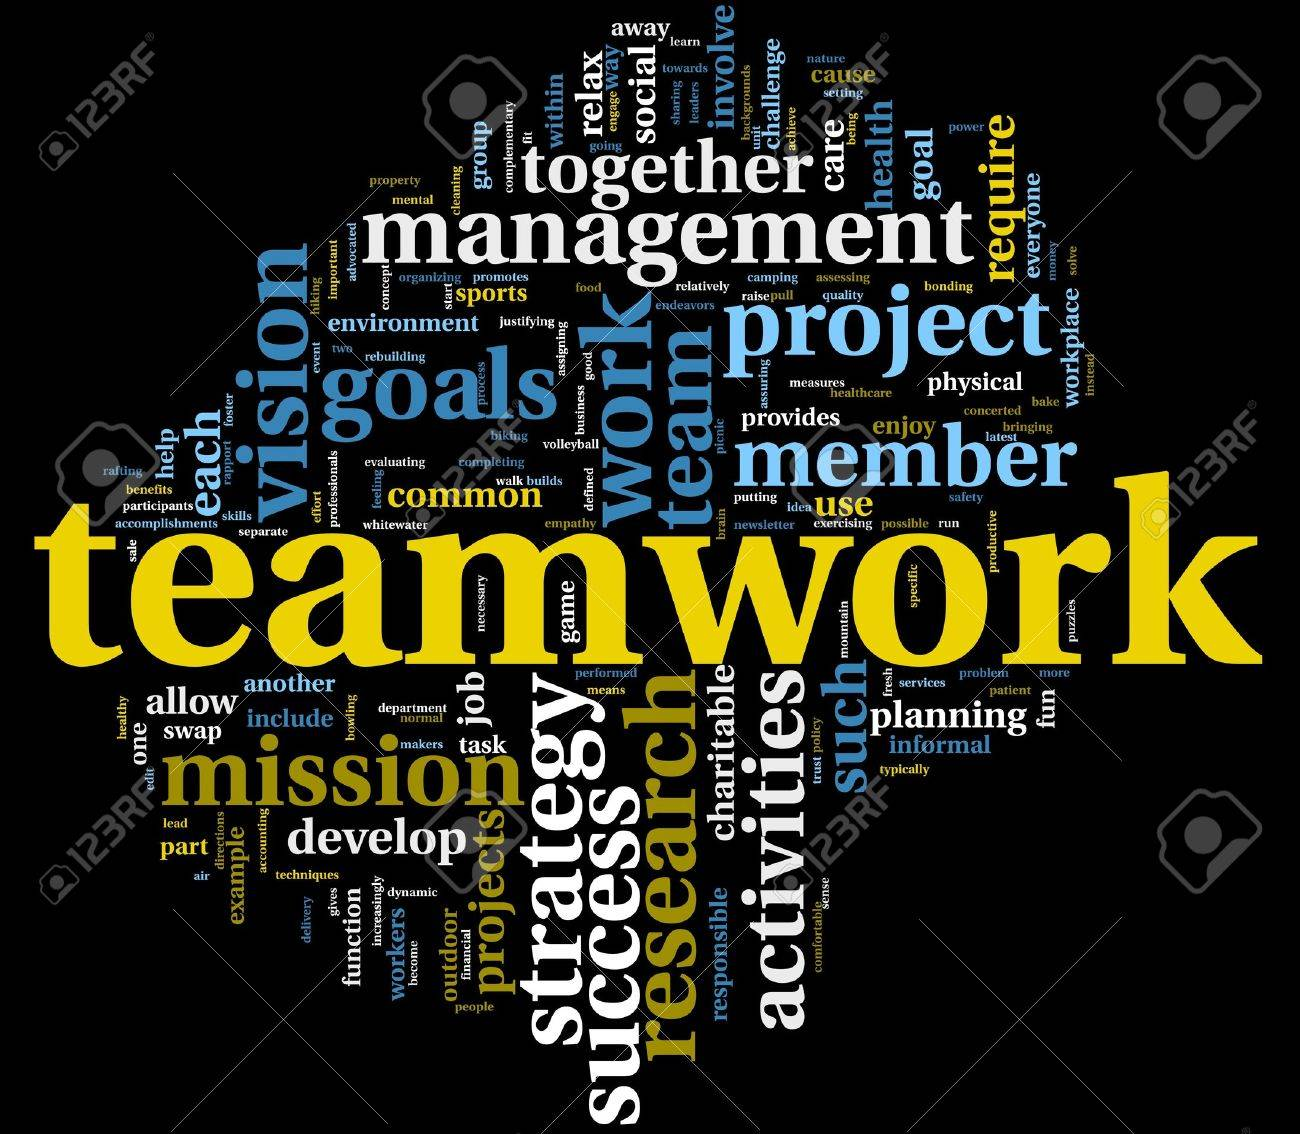 teamwork concept stock photos images royalty teamwork concept teamwork and strategy concept in word tag cloud stock photo